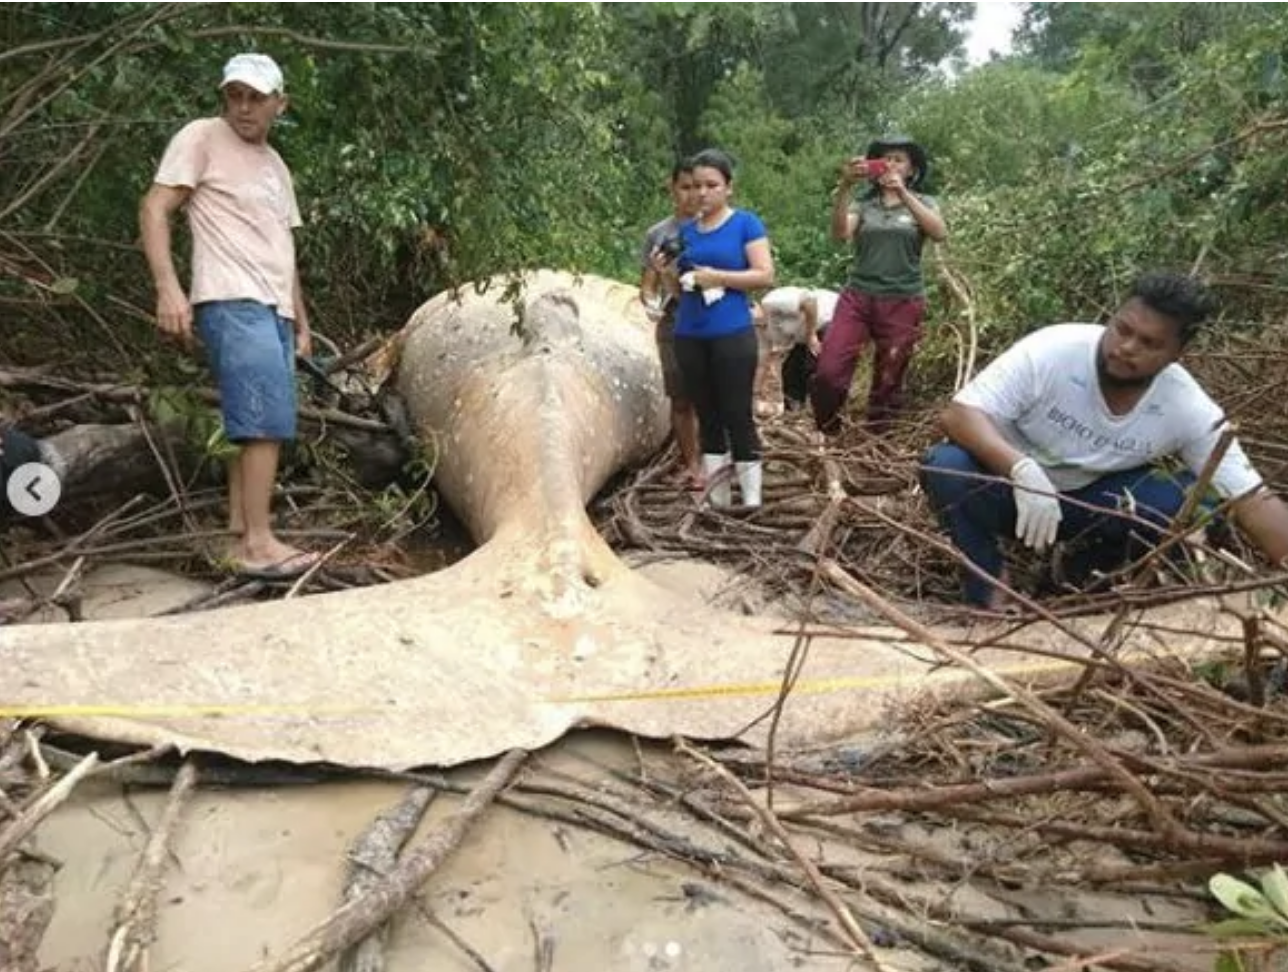 A Dead Whale Has Been Found On The Edge Of The Amazon Jungle